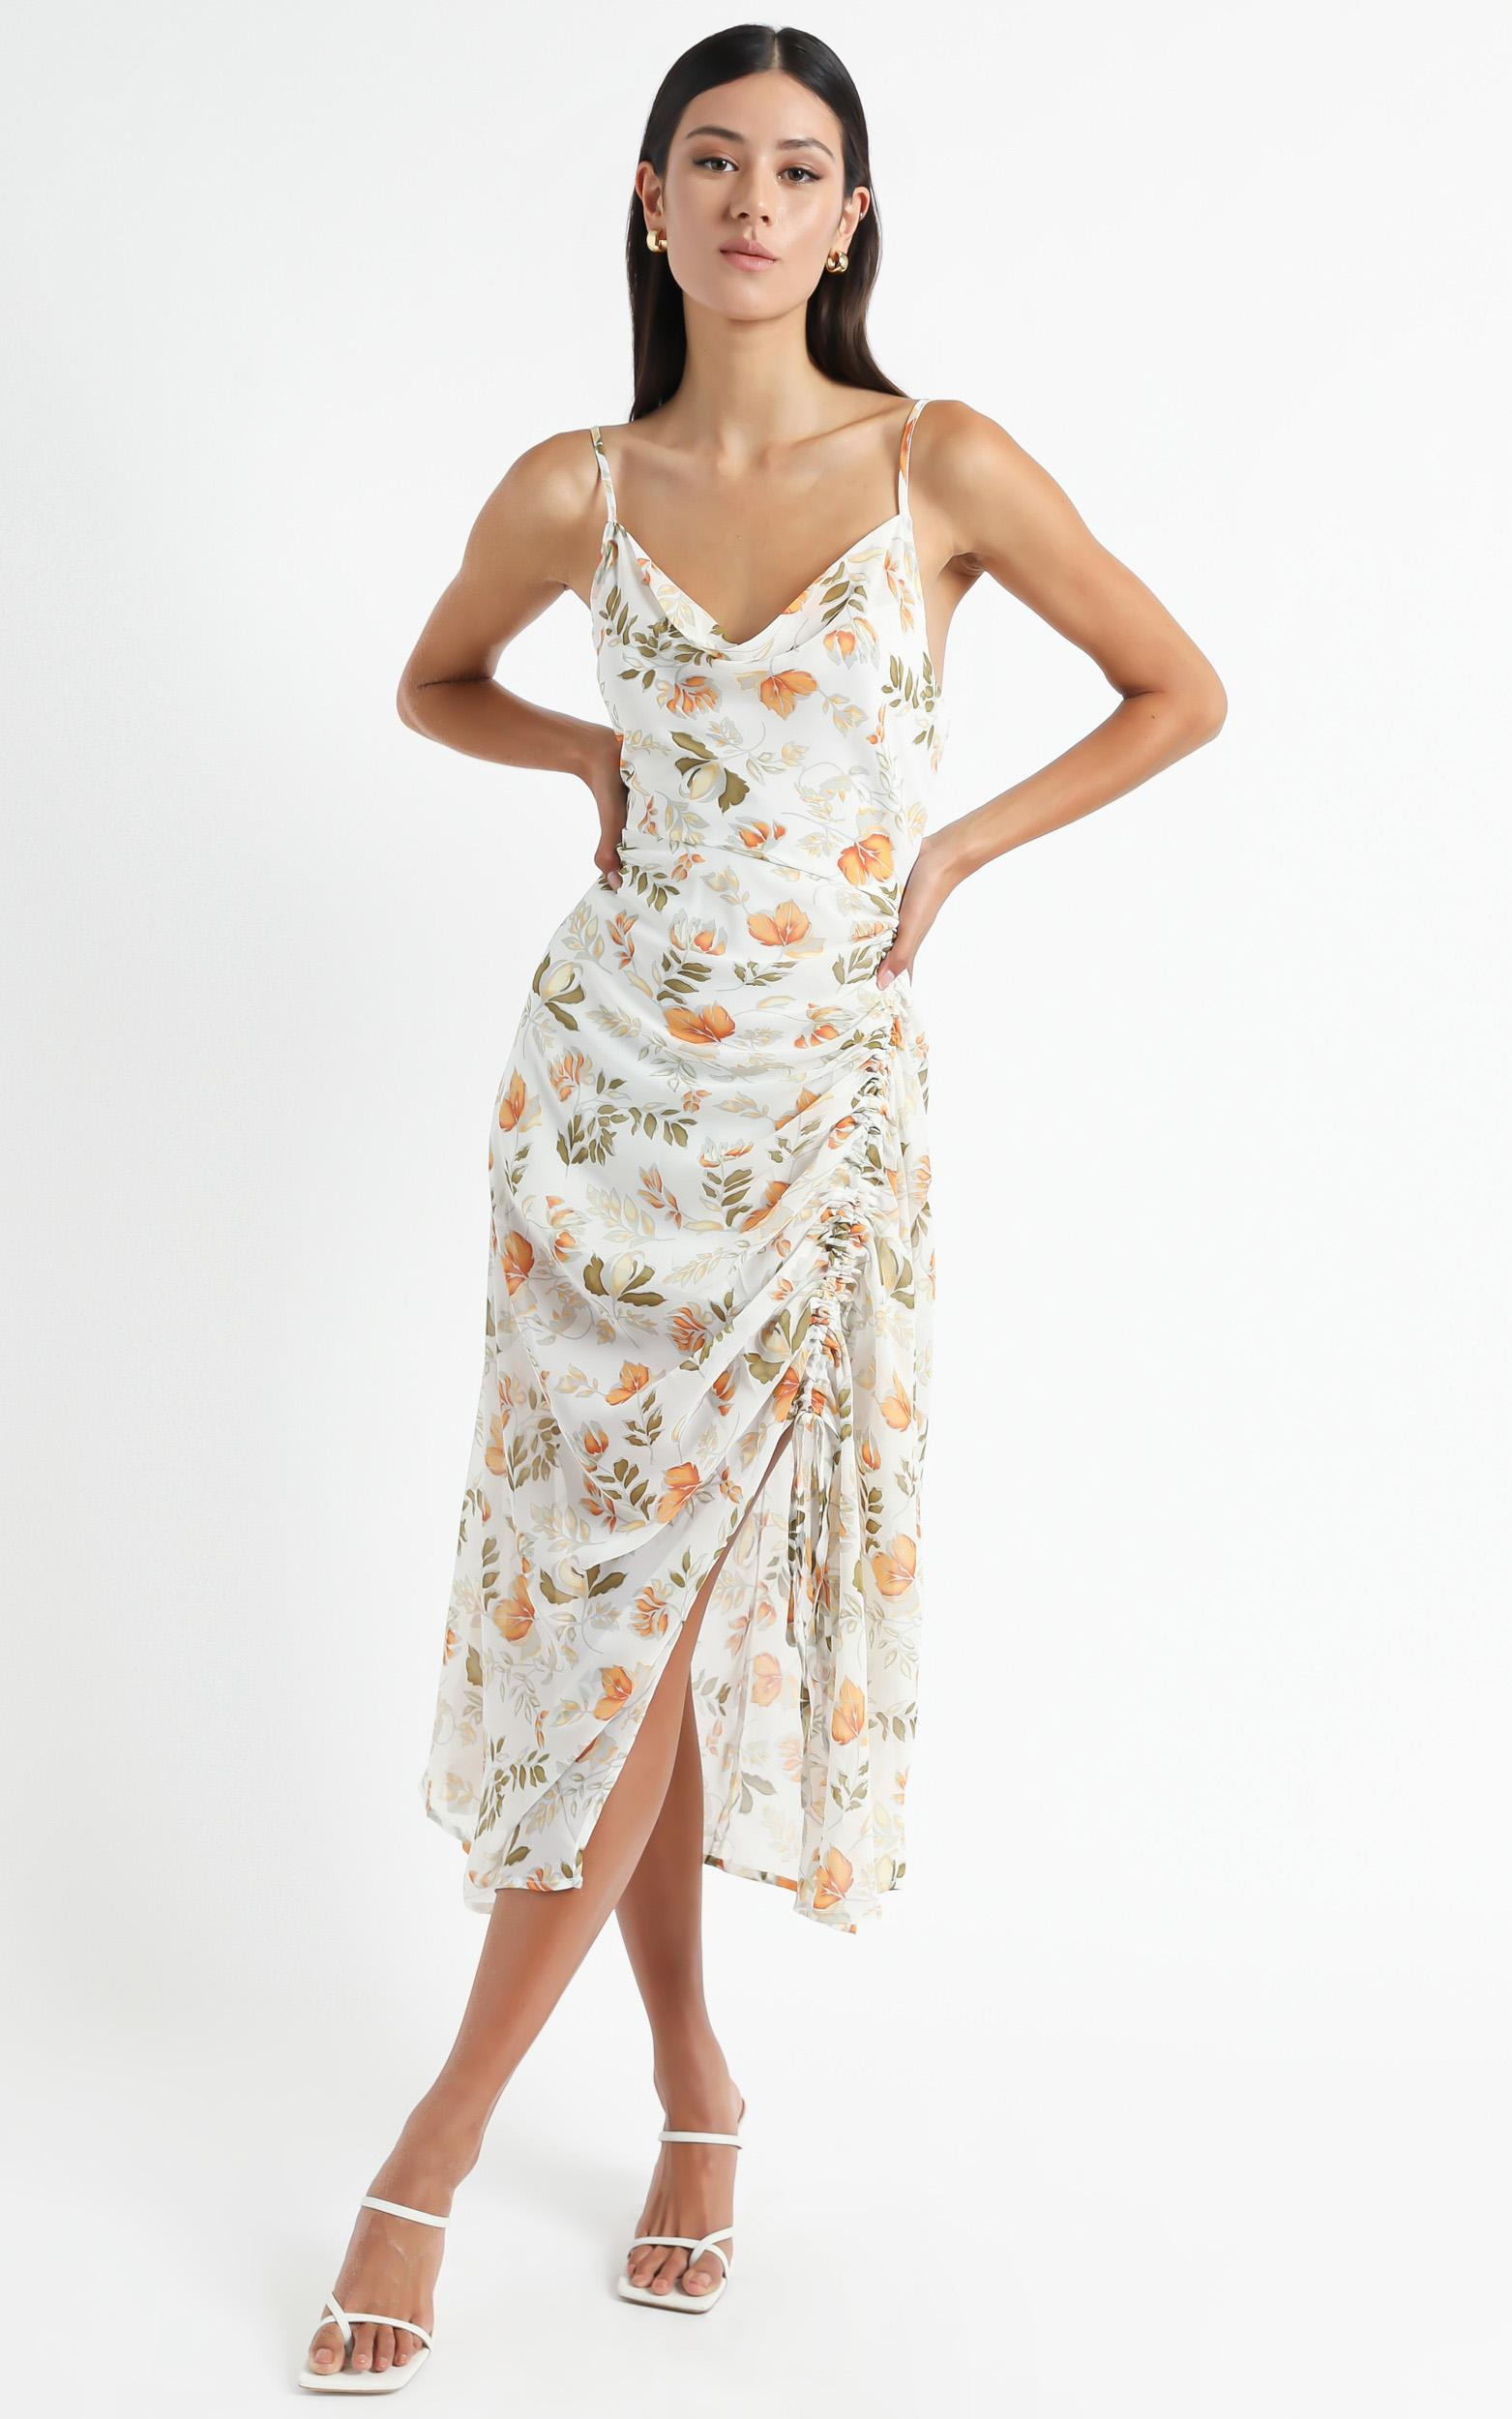 Choosing To Believe dress in white floral - 16 (XXL), White, hi-res image number null